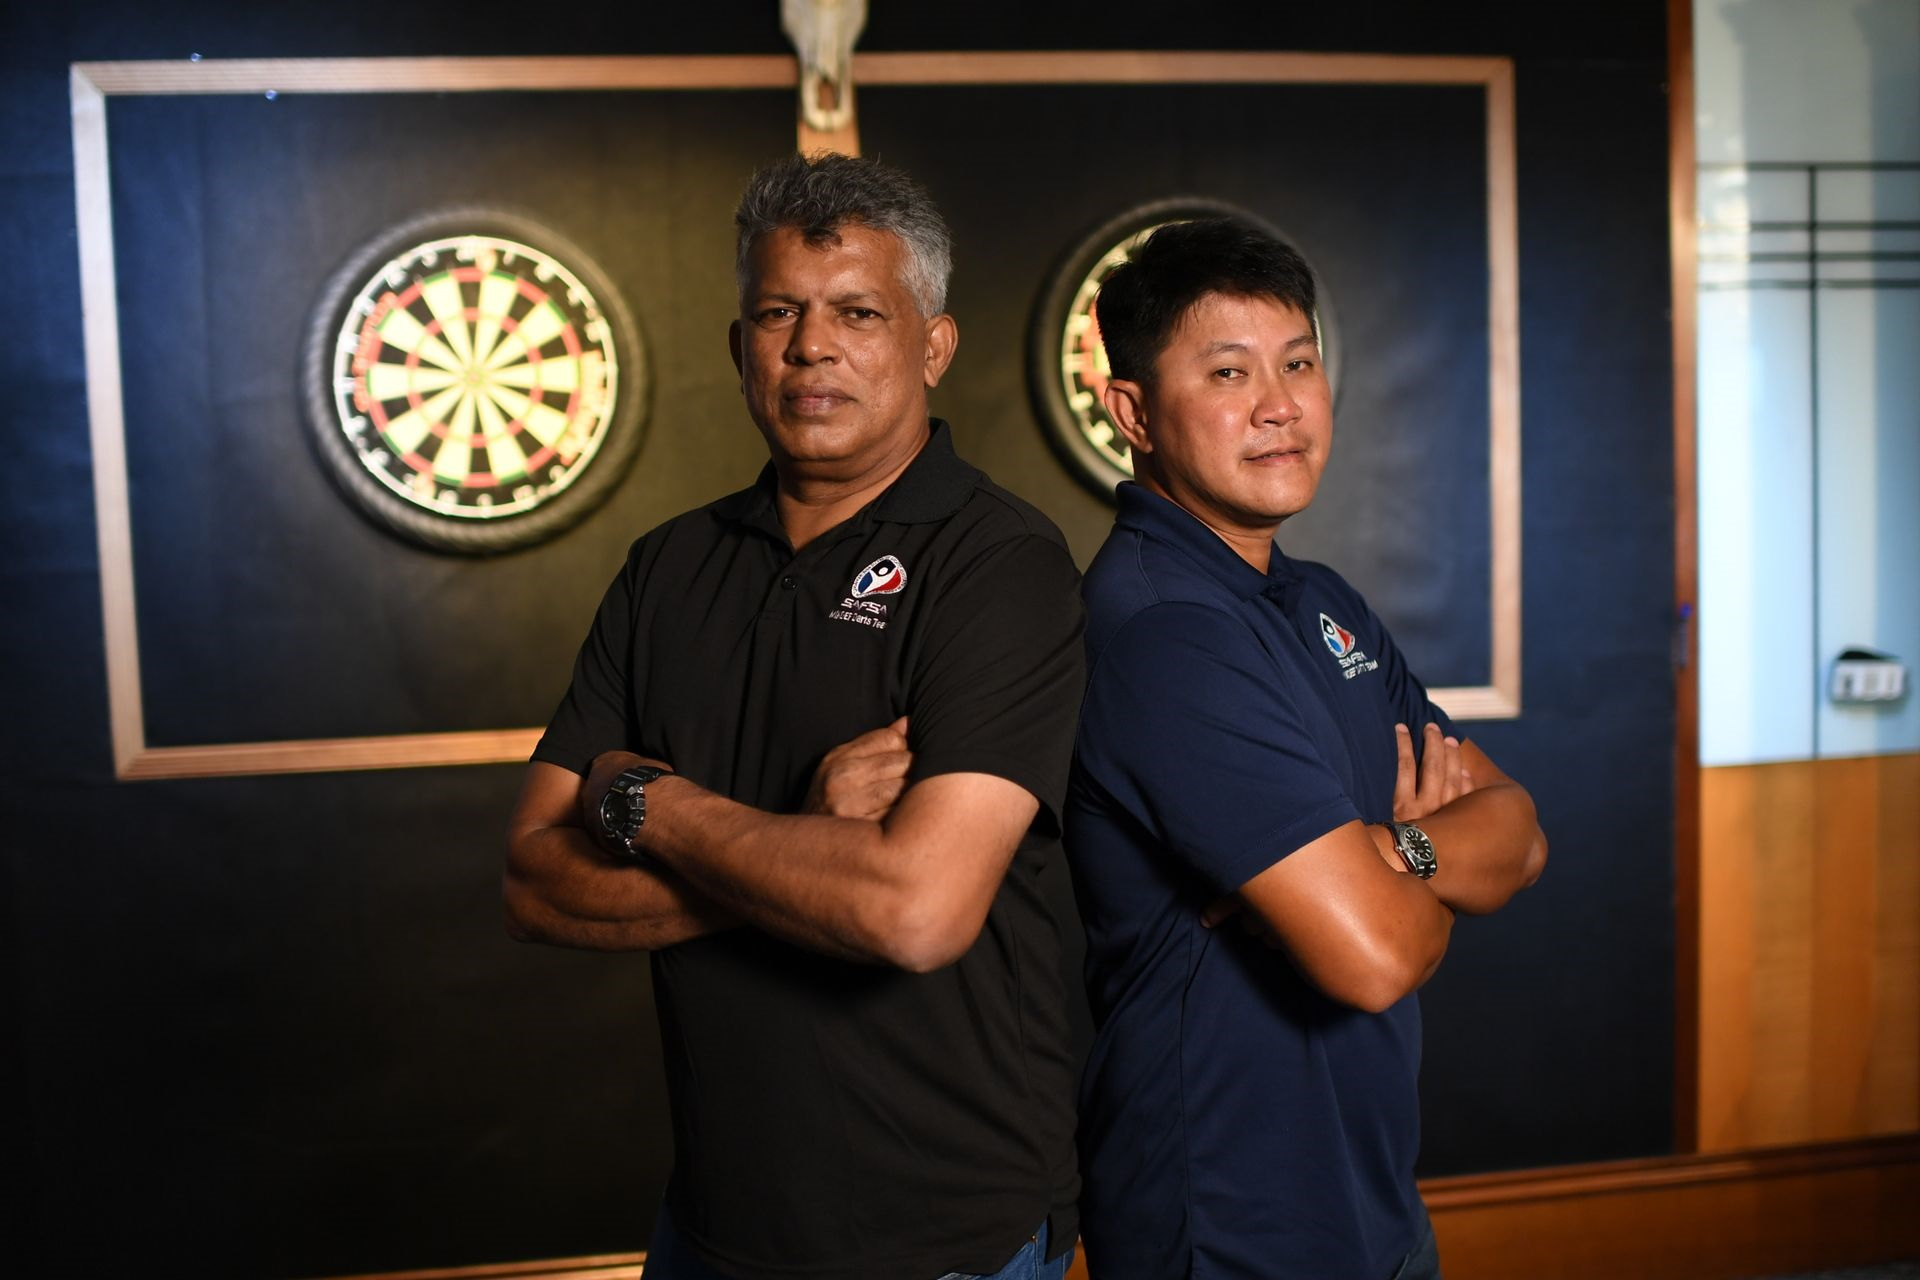 Aim for perfection with SAFSA darts players